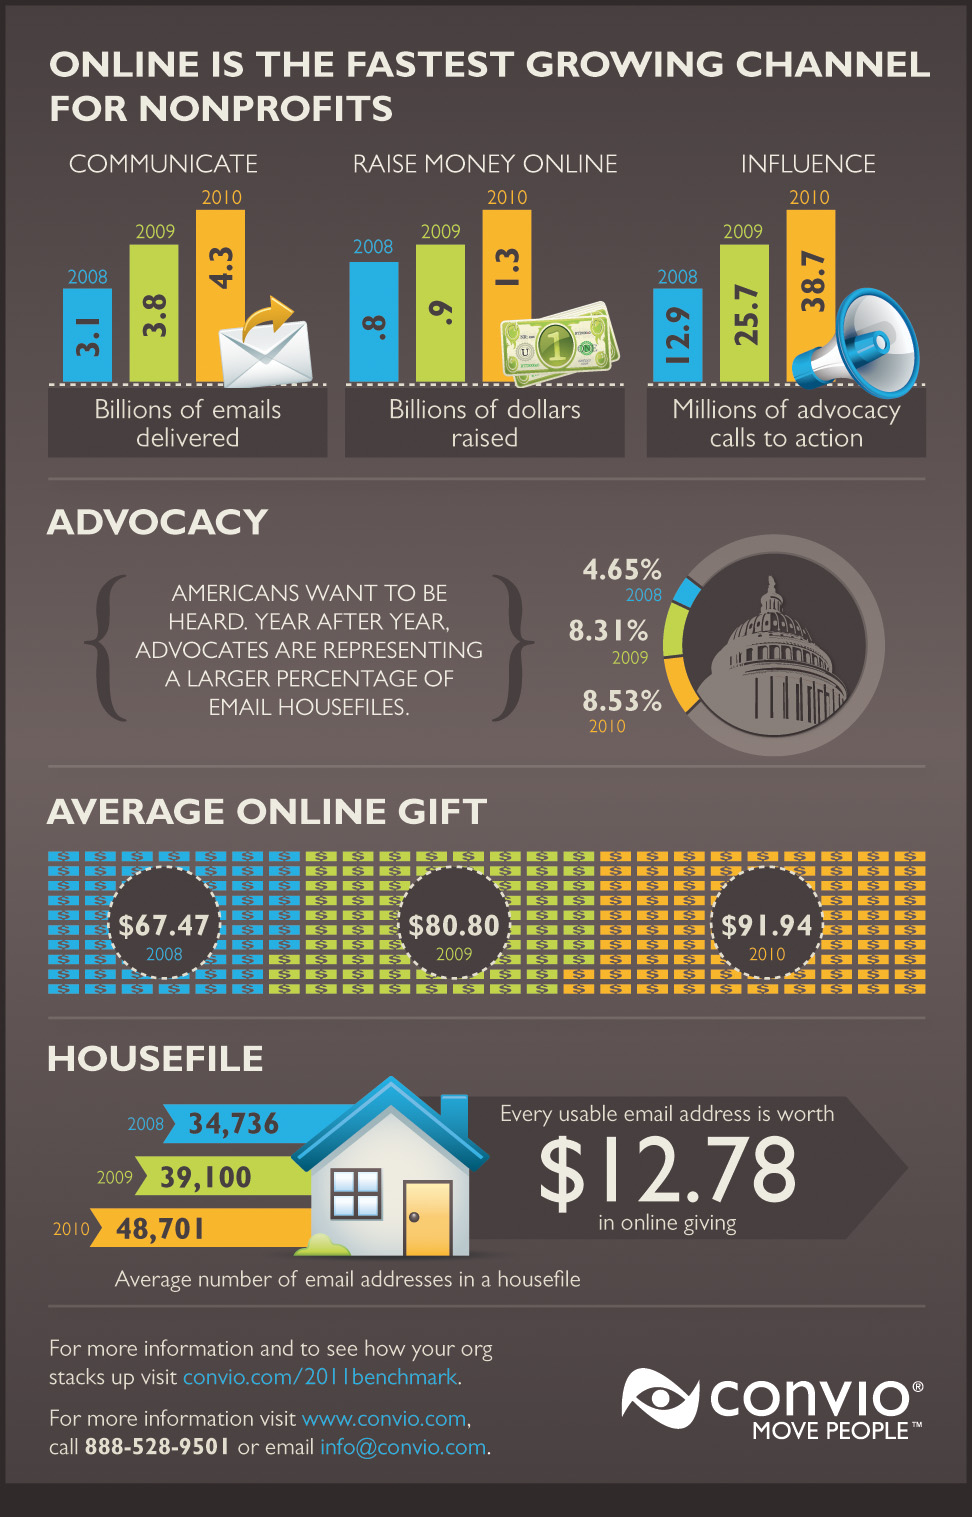 How Much Money Do Americans Give Online? [INFOGRAPHIC]